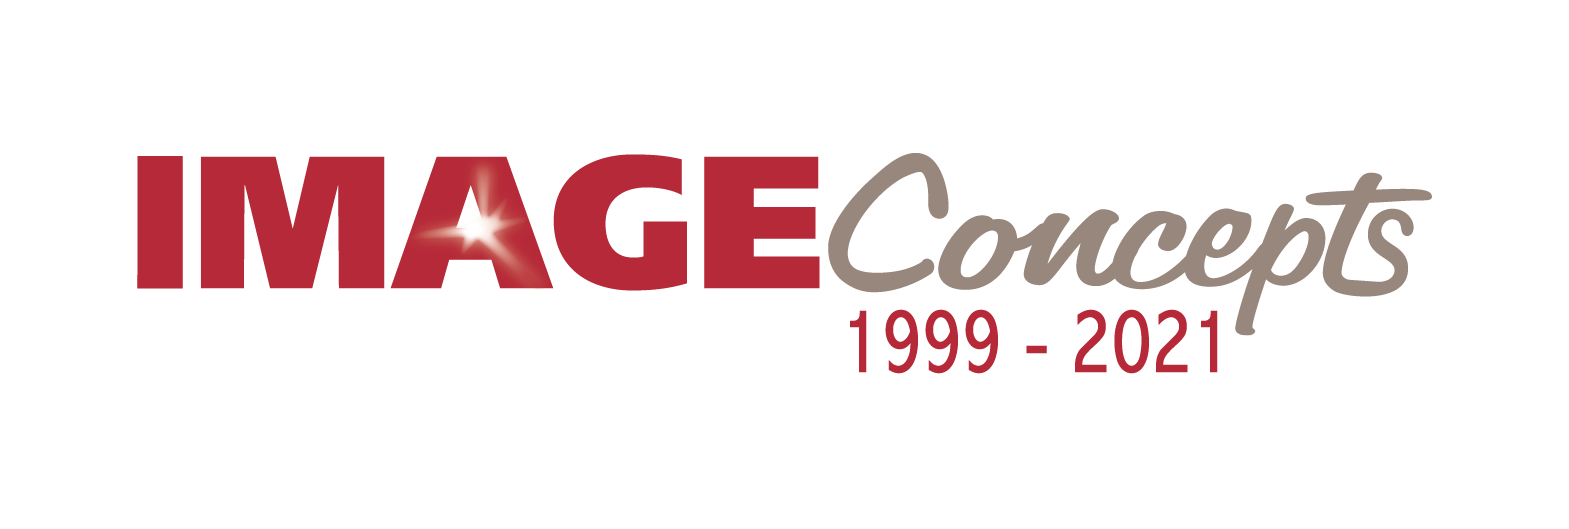 Image Concepts logo, 1999 to 2021